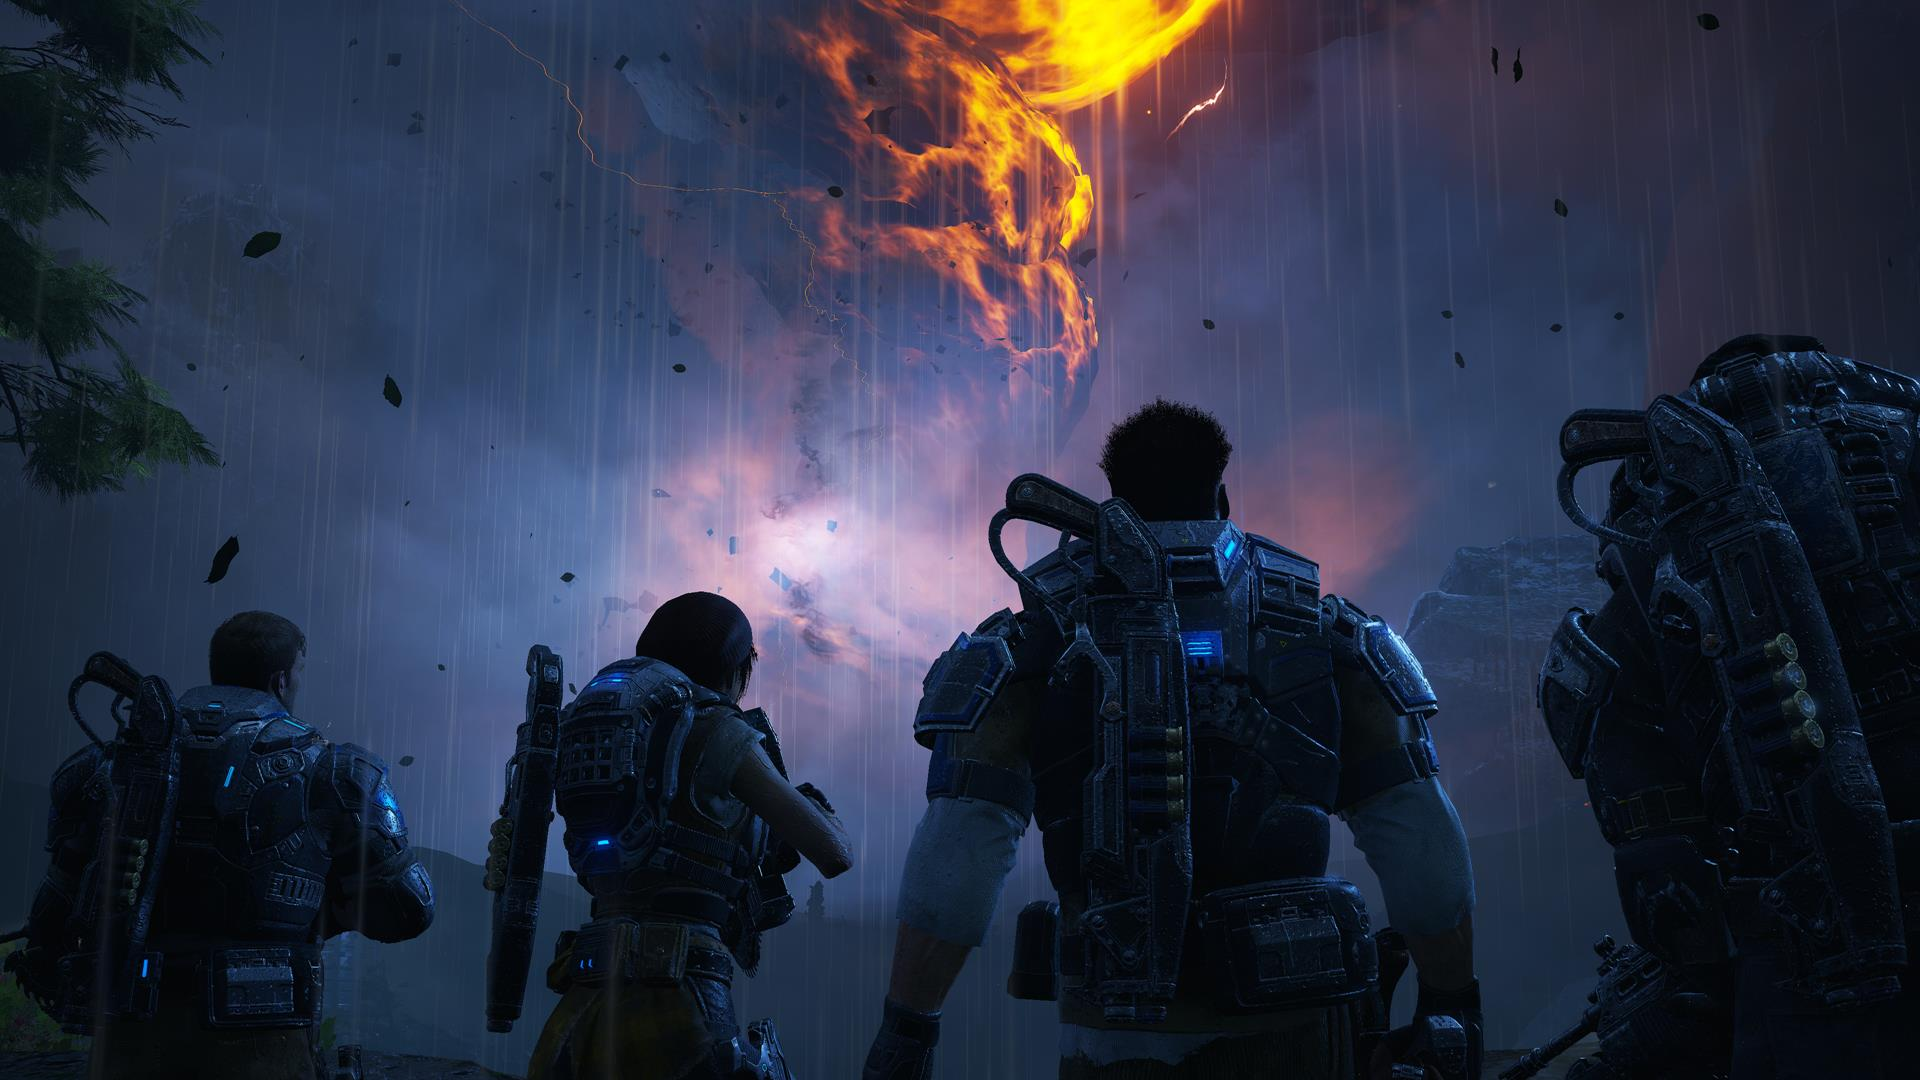 Pubg Map Wallpaper Gears Of War 4 Here S How The Level From The E3 2015 Demo